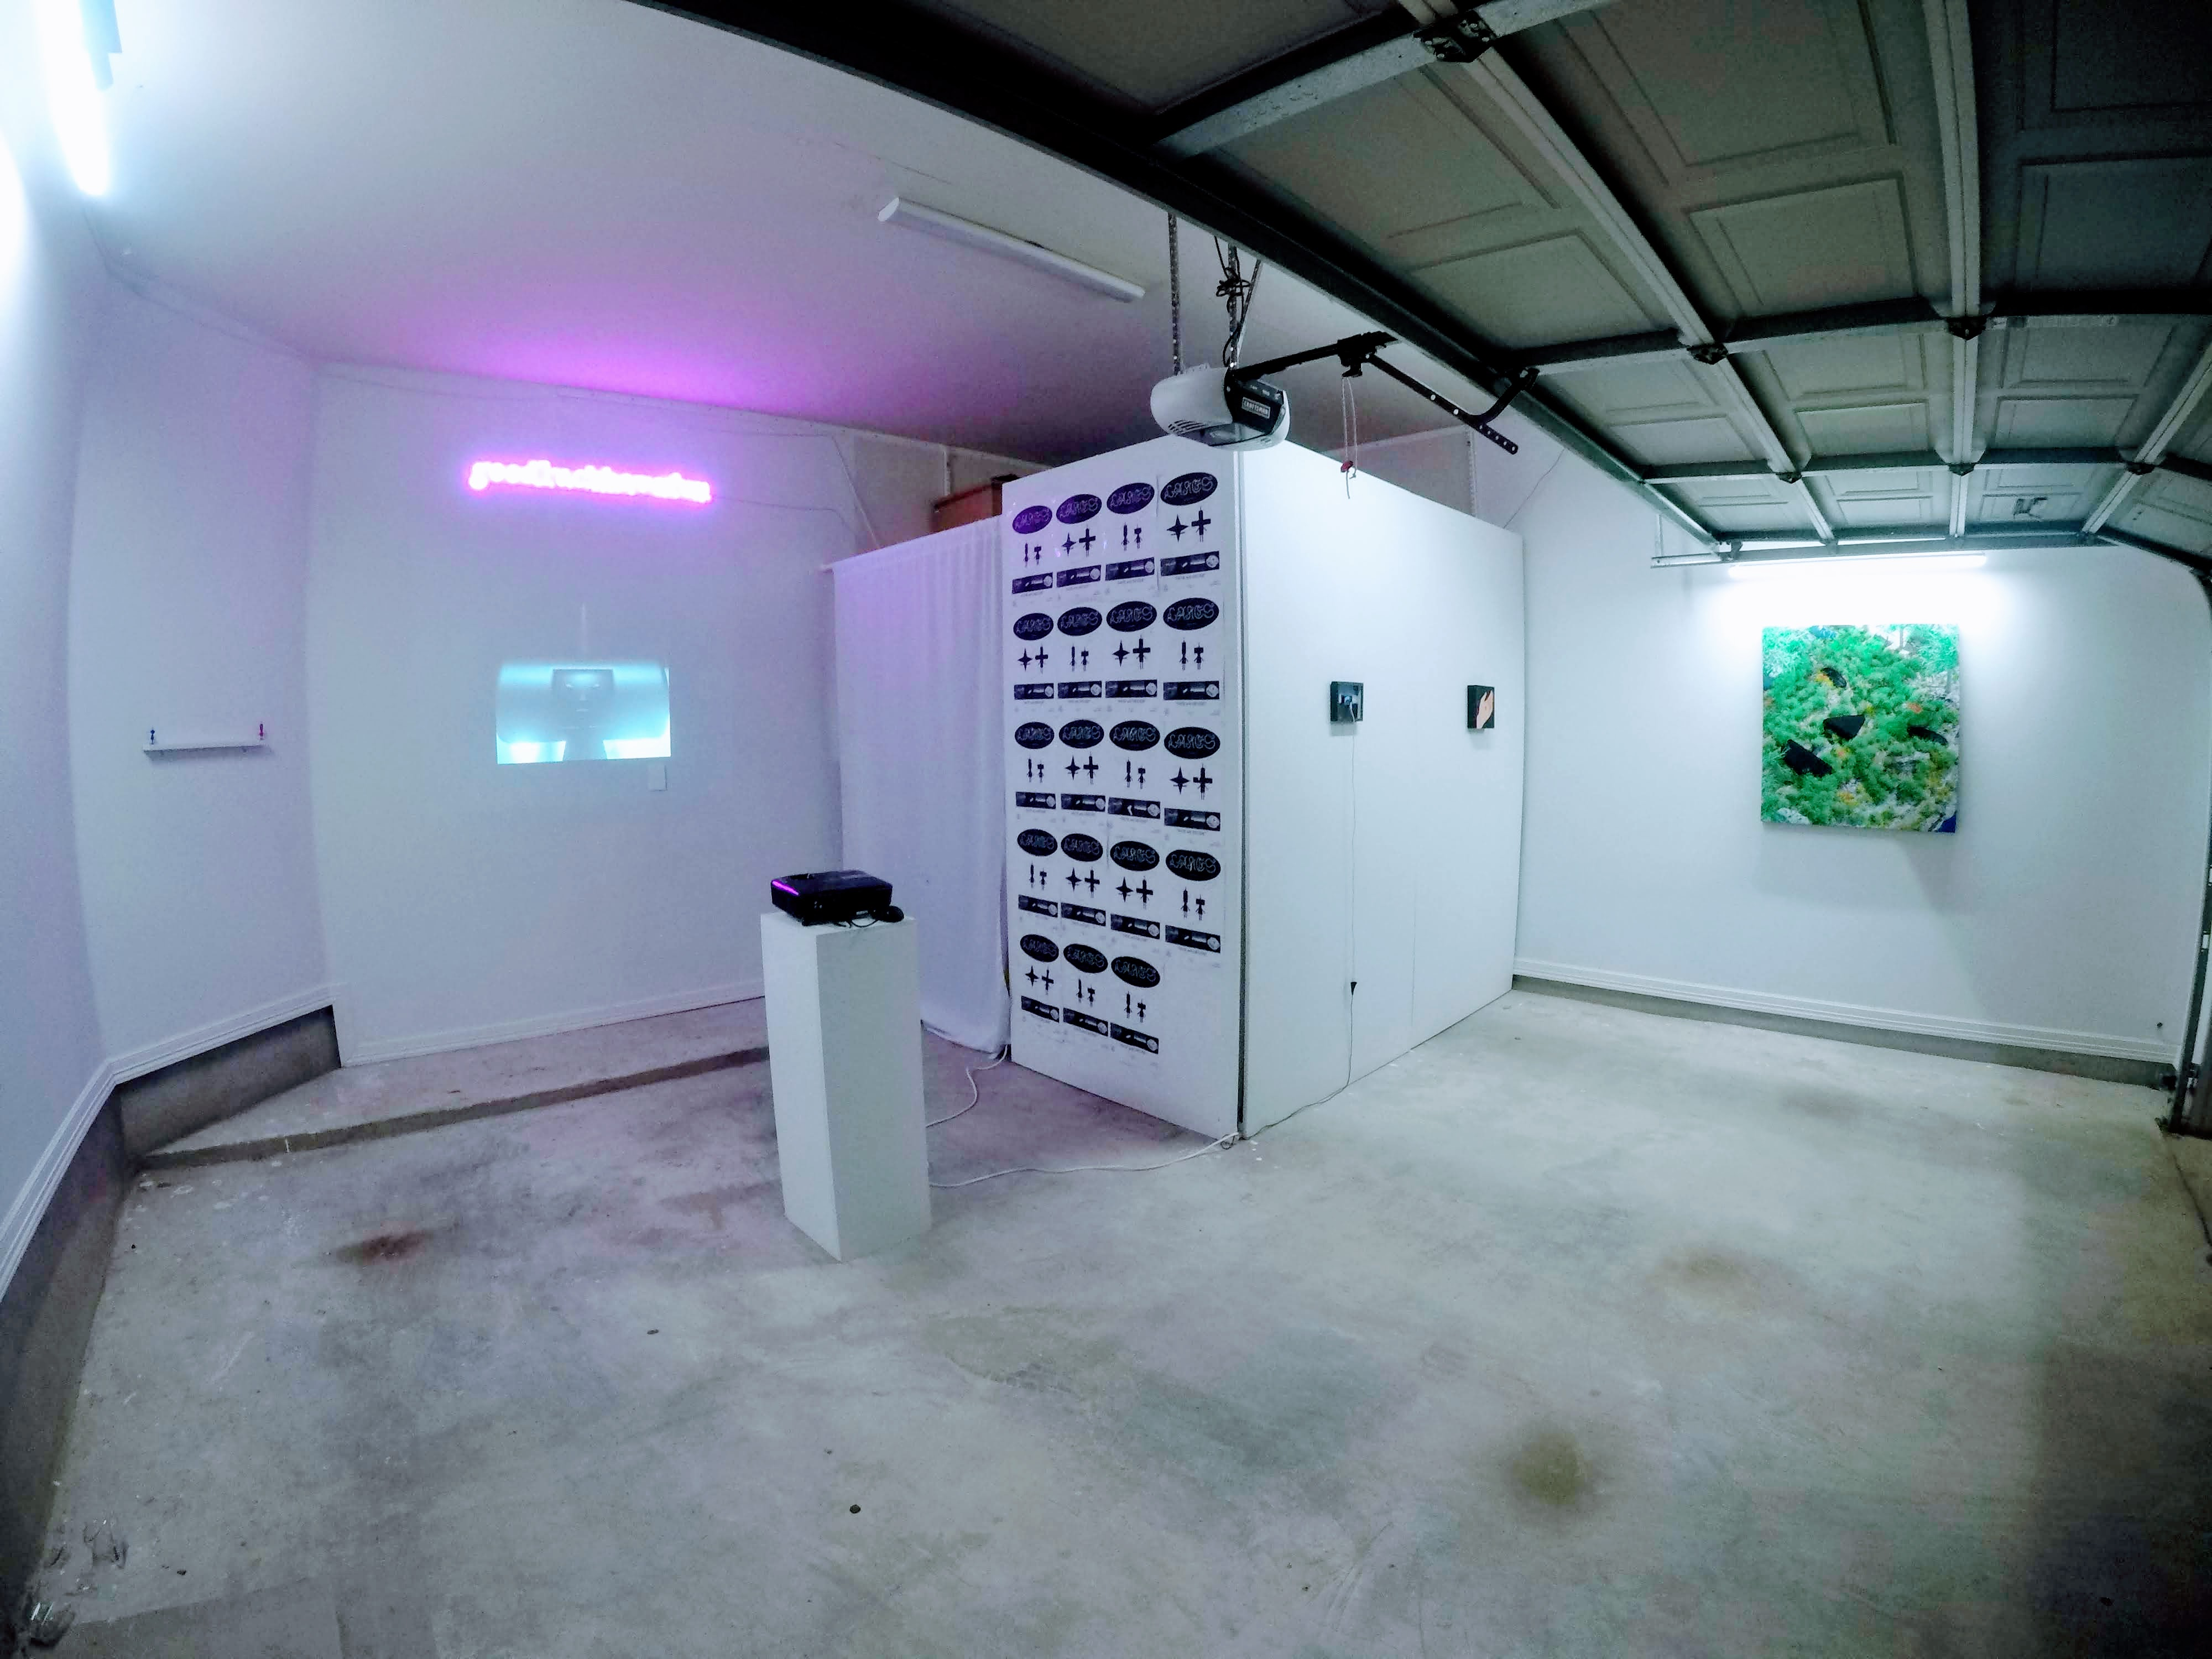 LAKES exhibition installed in GLHF gallery, march 2021